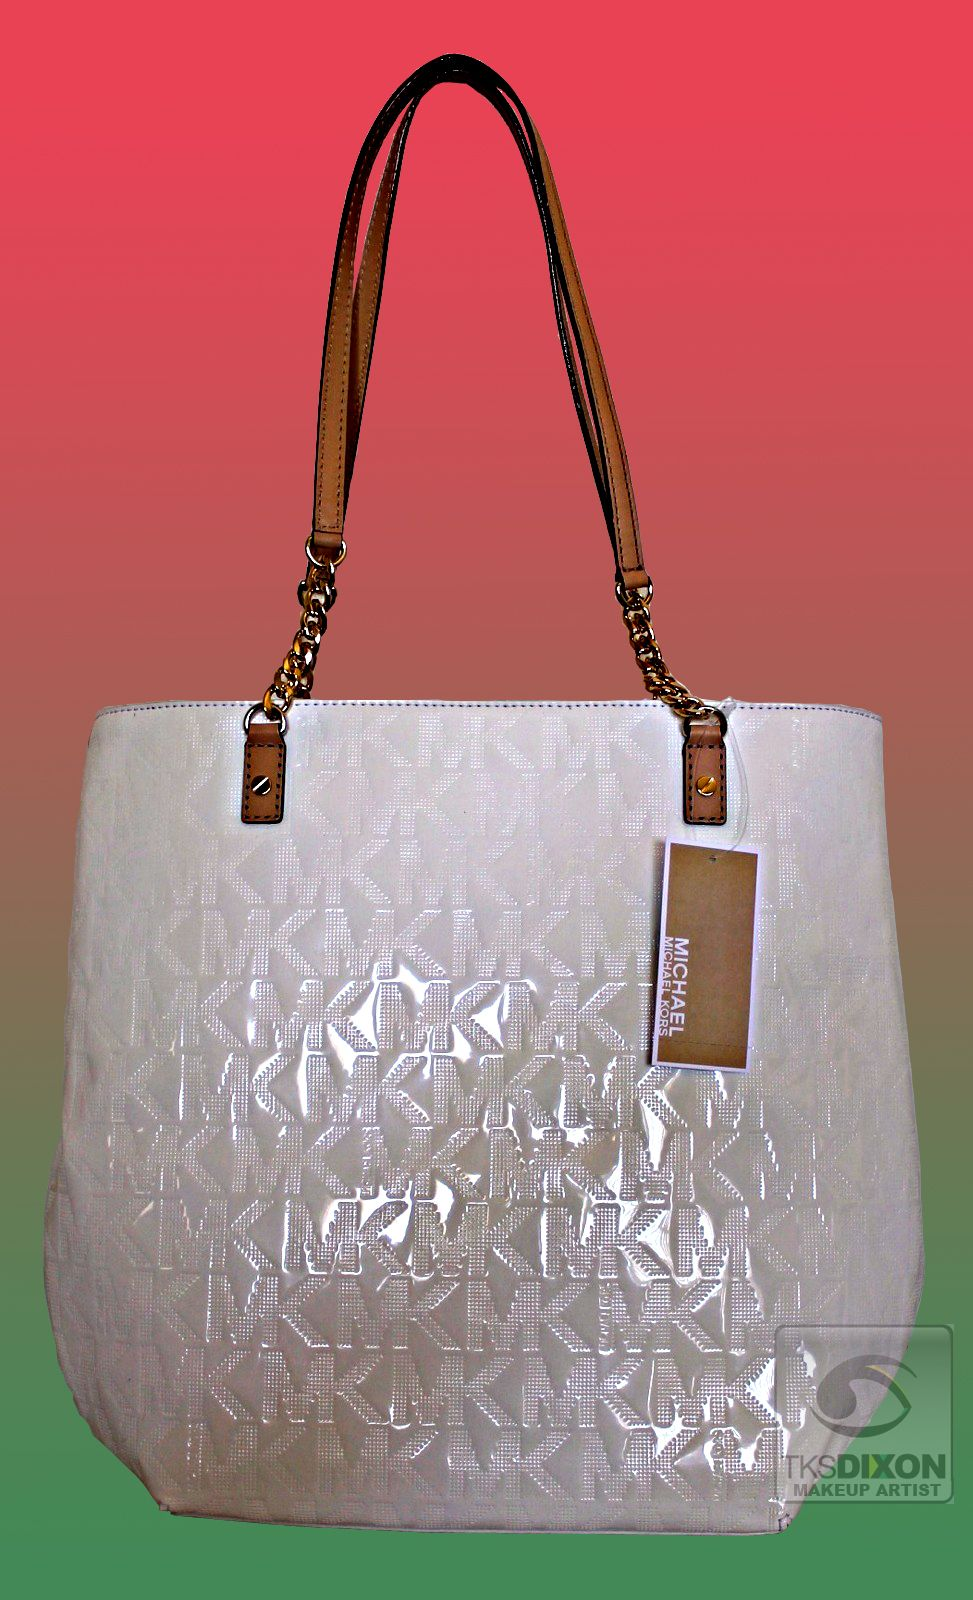 TKSDeal OF THE WEEK: This Michael Kors jet set white tote bag with mirror metallic monogram is at TJ Maxx for $129.99. Perfect for everyday use and will also be perfect for a beach outing this summer. Do you like? Like on https://www.facebook.com/tksdixon